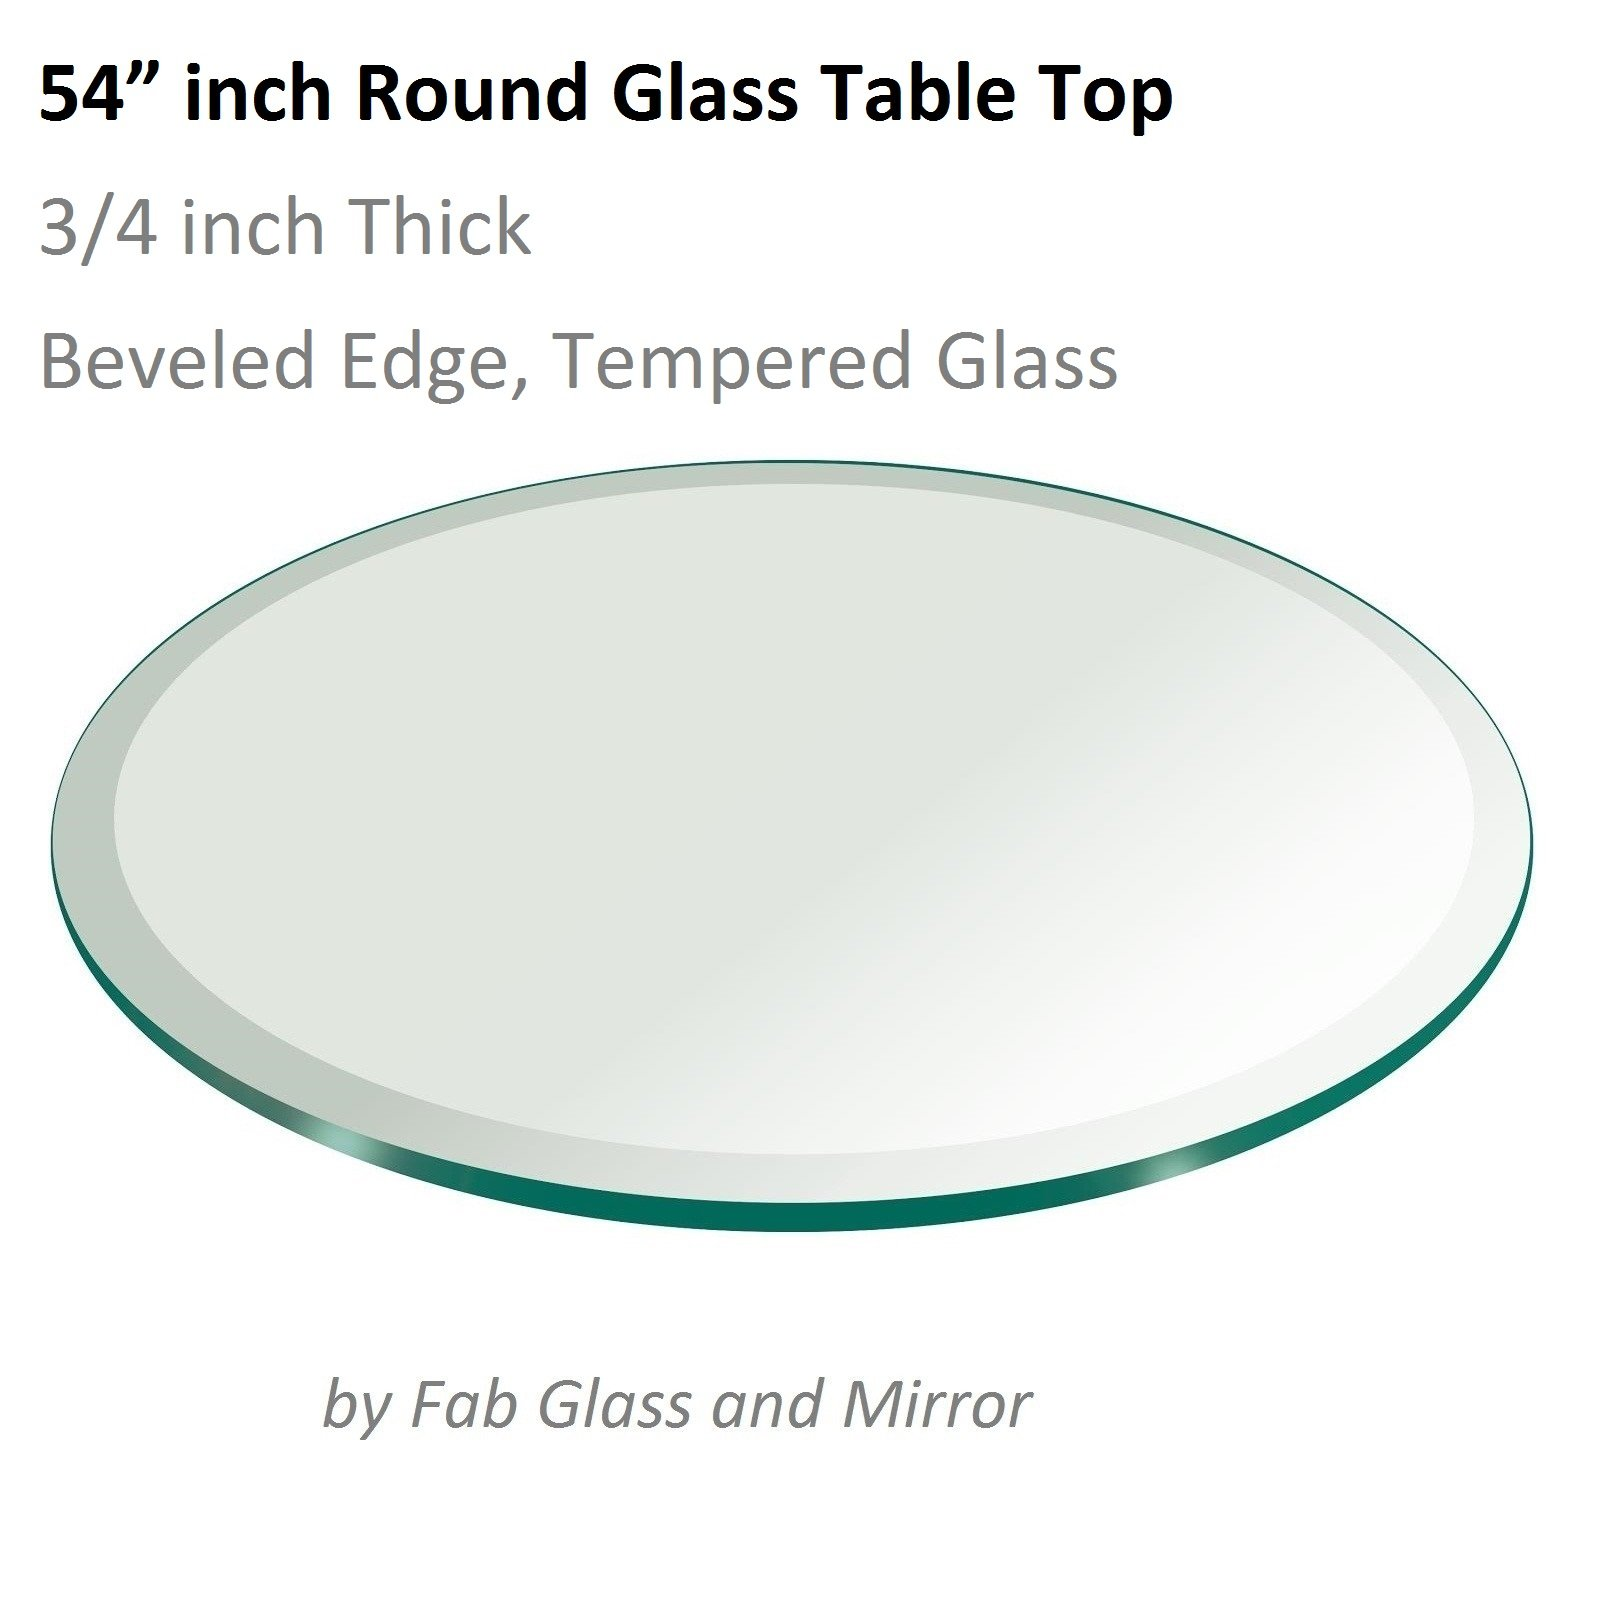 54'' Inch Round Glass Table Top 3/4'' Thick Tempered Beveled Edge by Fab Glass and Mirror